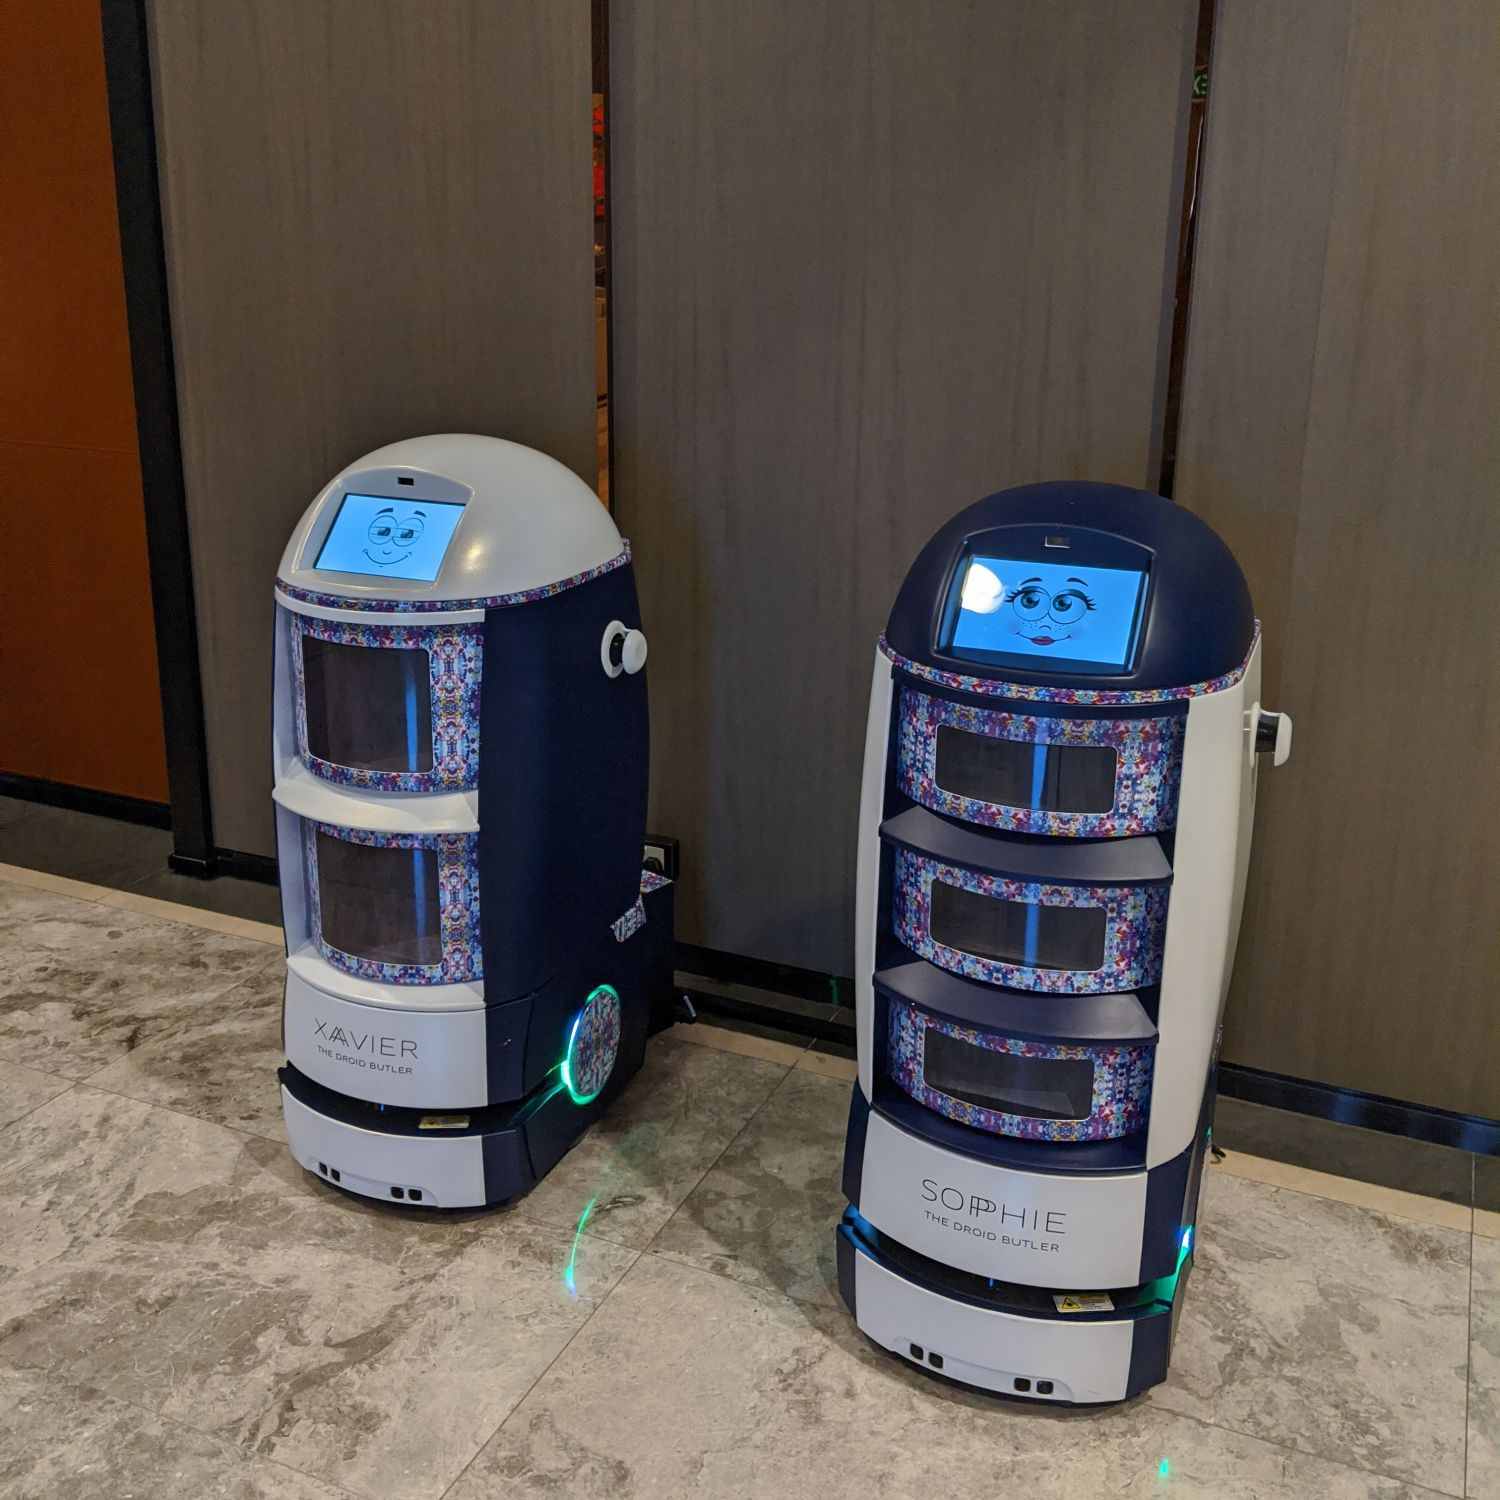 sofitel singapore city centre droid butlers